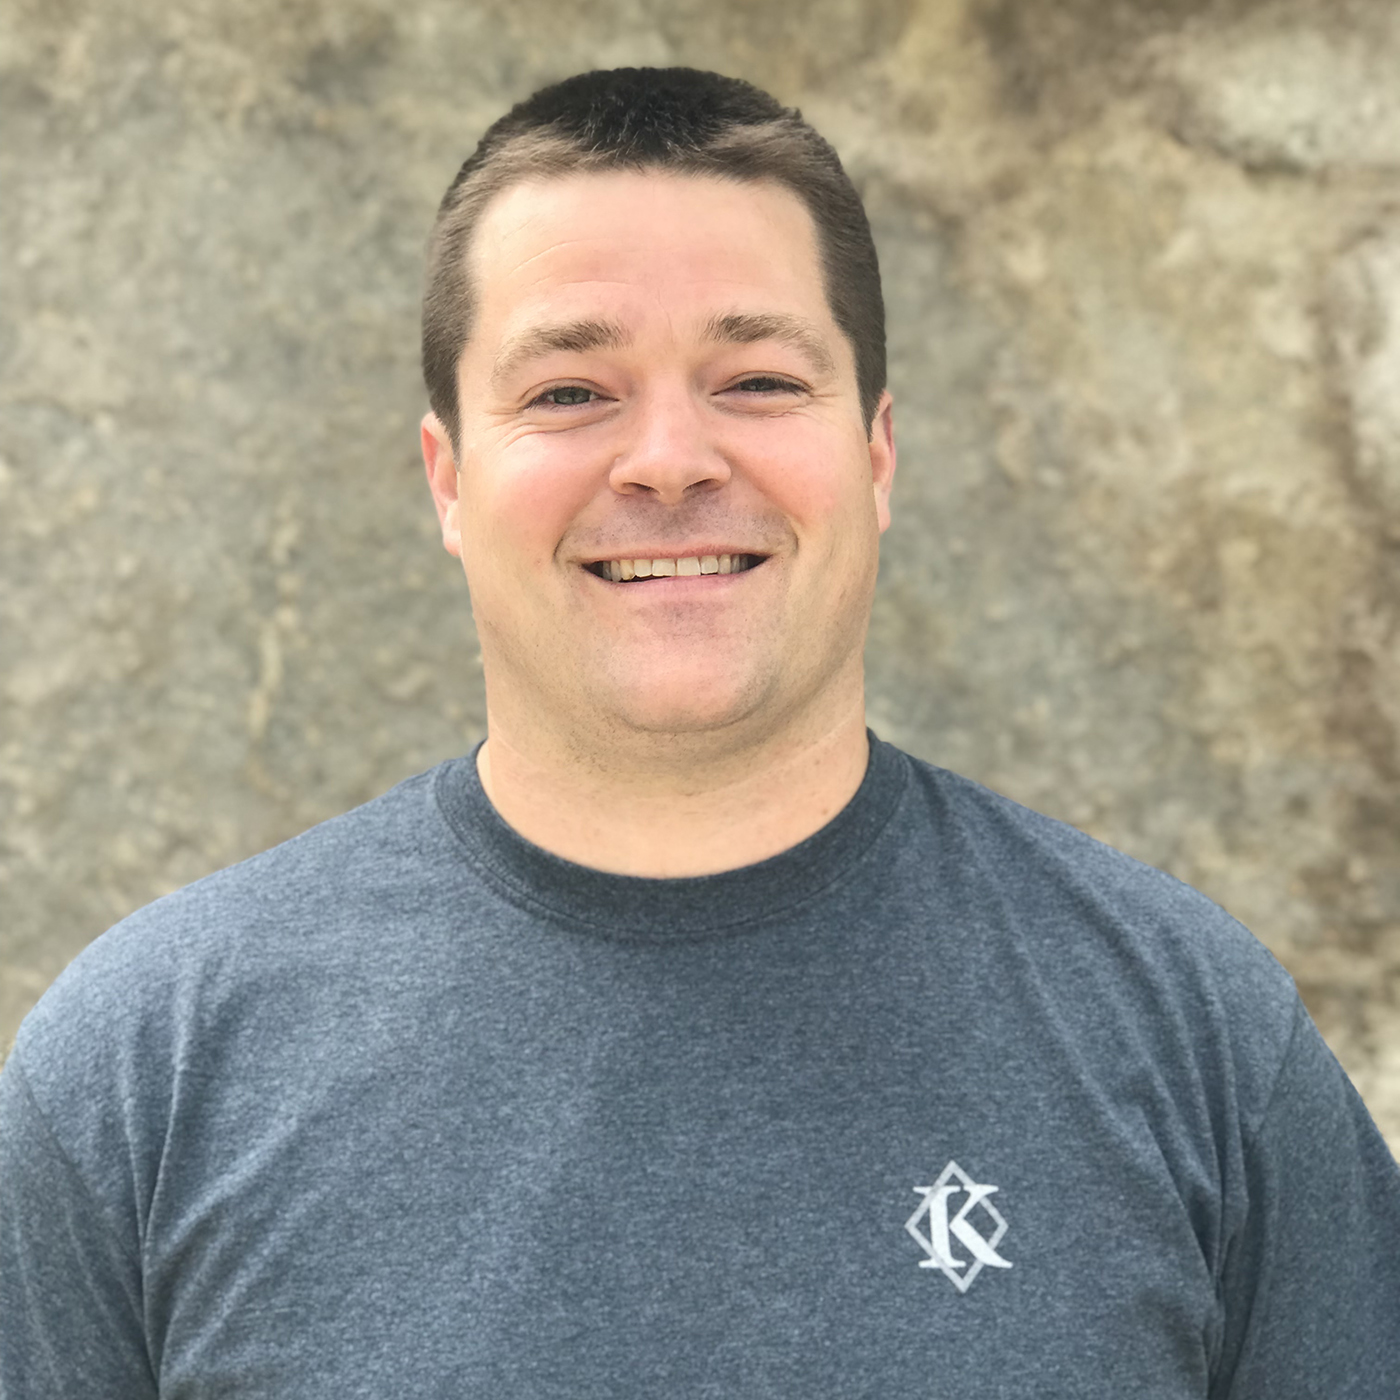 Drew Johnson is a site manager for Knickerbocker Group